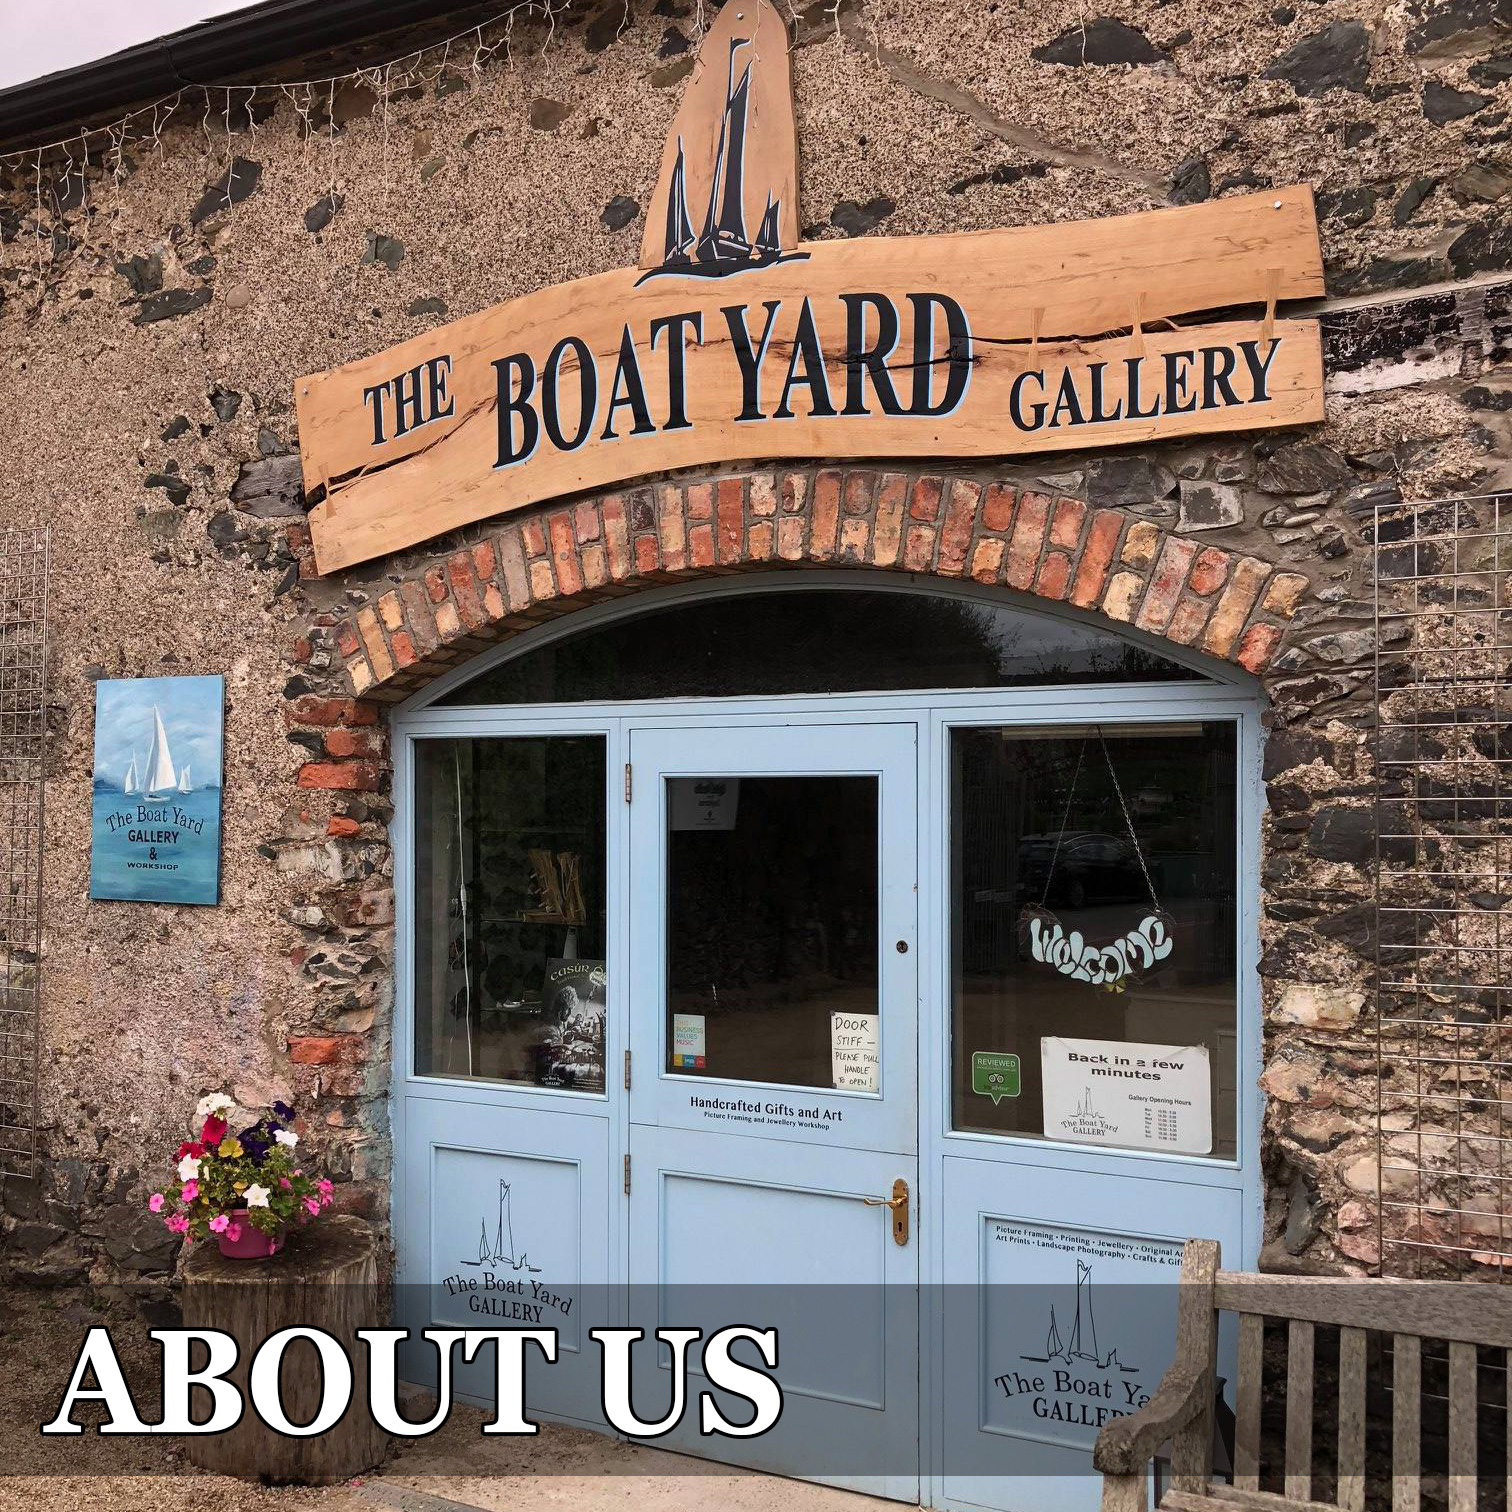 About the Boat Yard Gallery